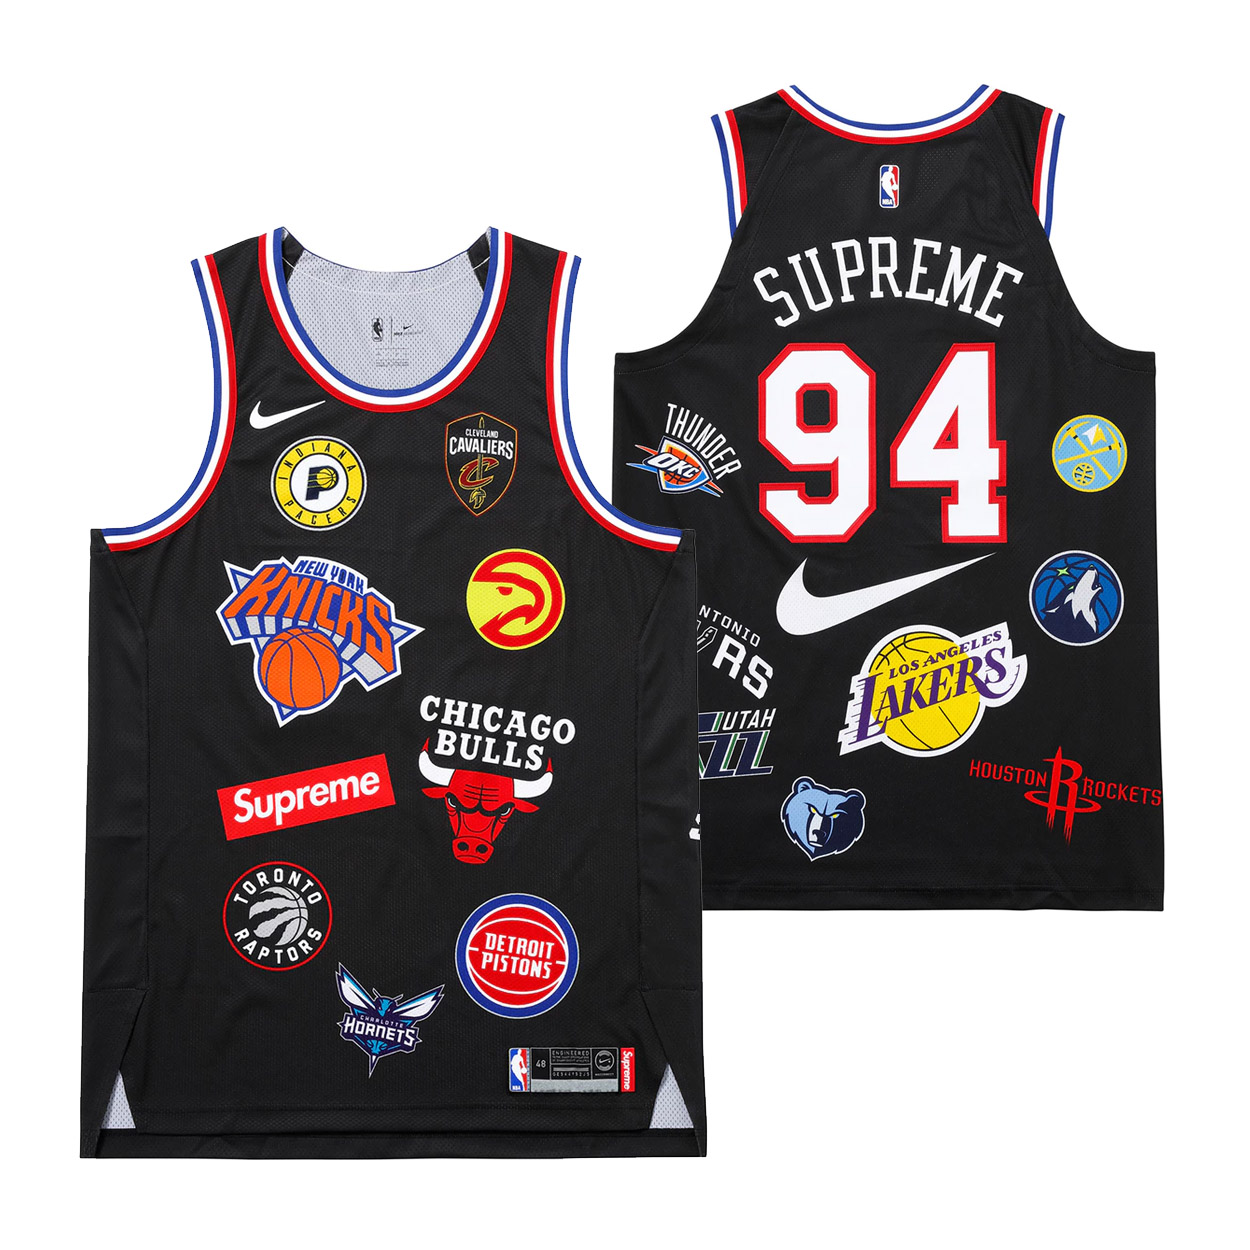 d377fec7 Supreme Nike/NBA Teams Authentic Jersey Black | Novelship: Buy and Sell  Sneakers, Streetwear, 100% Authentic